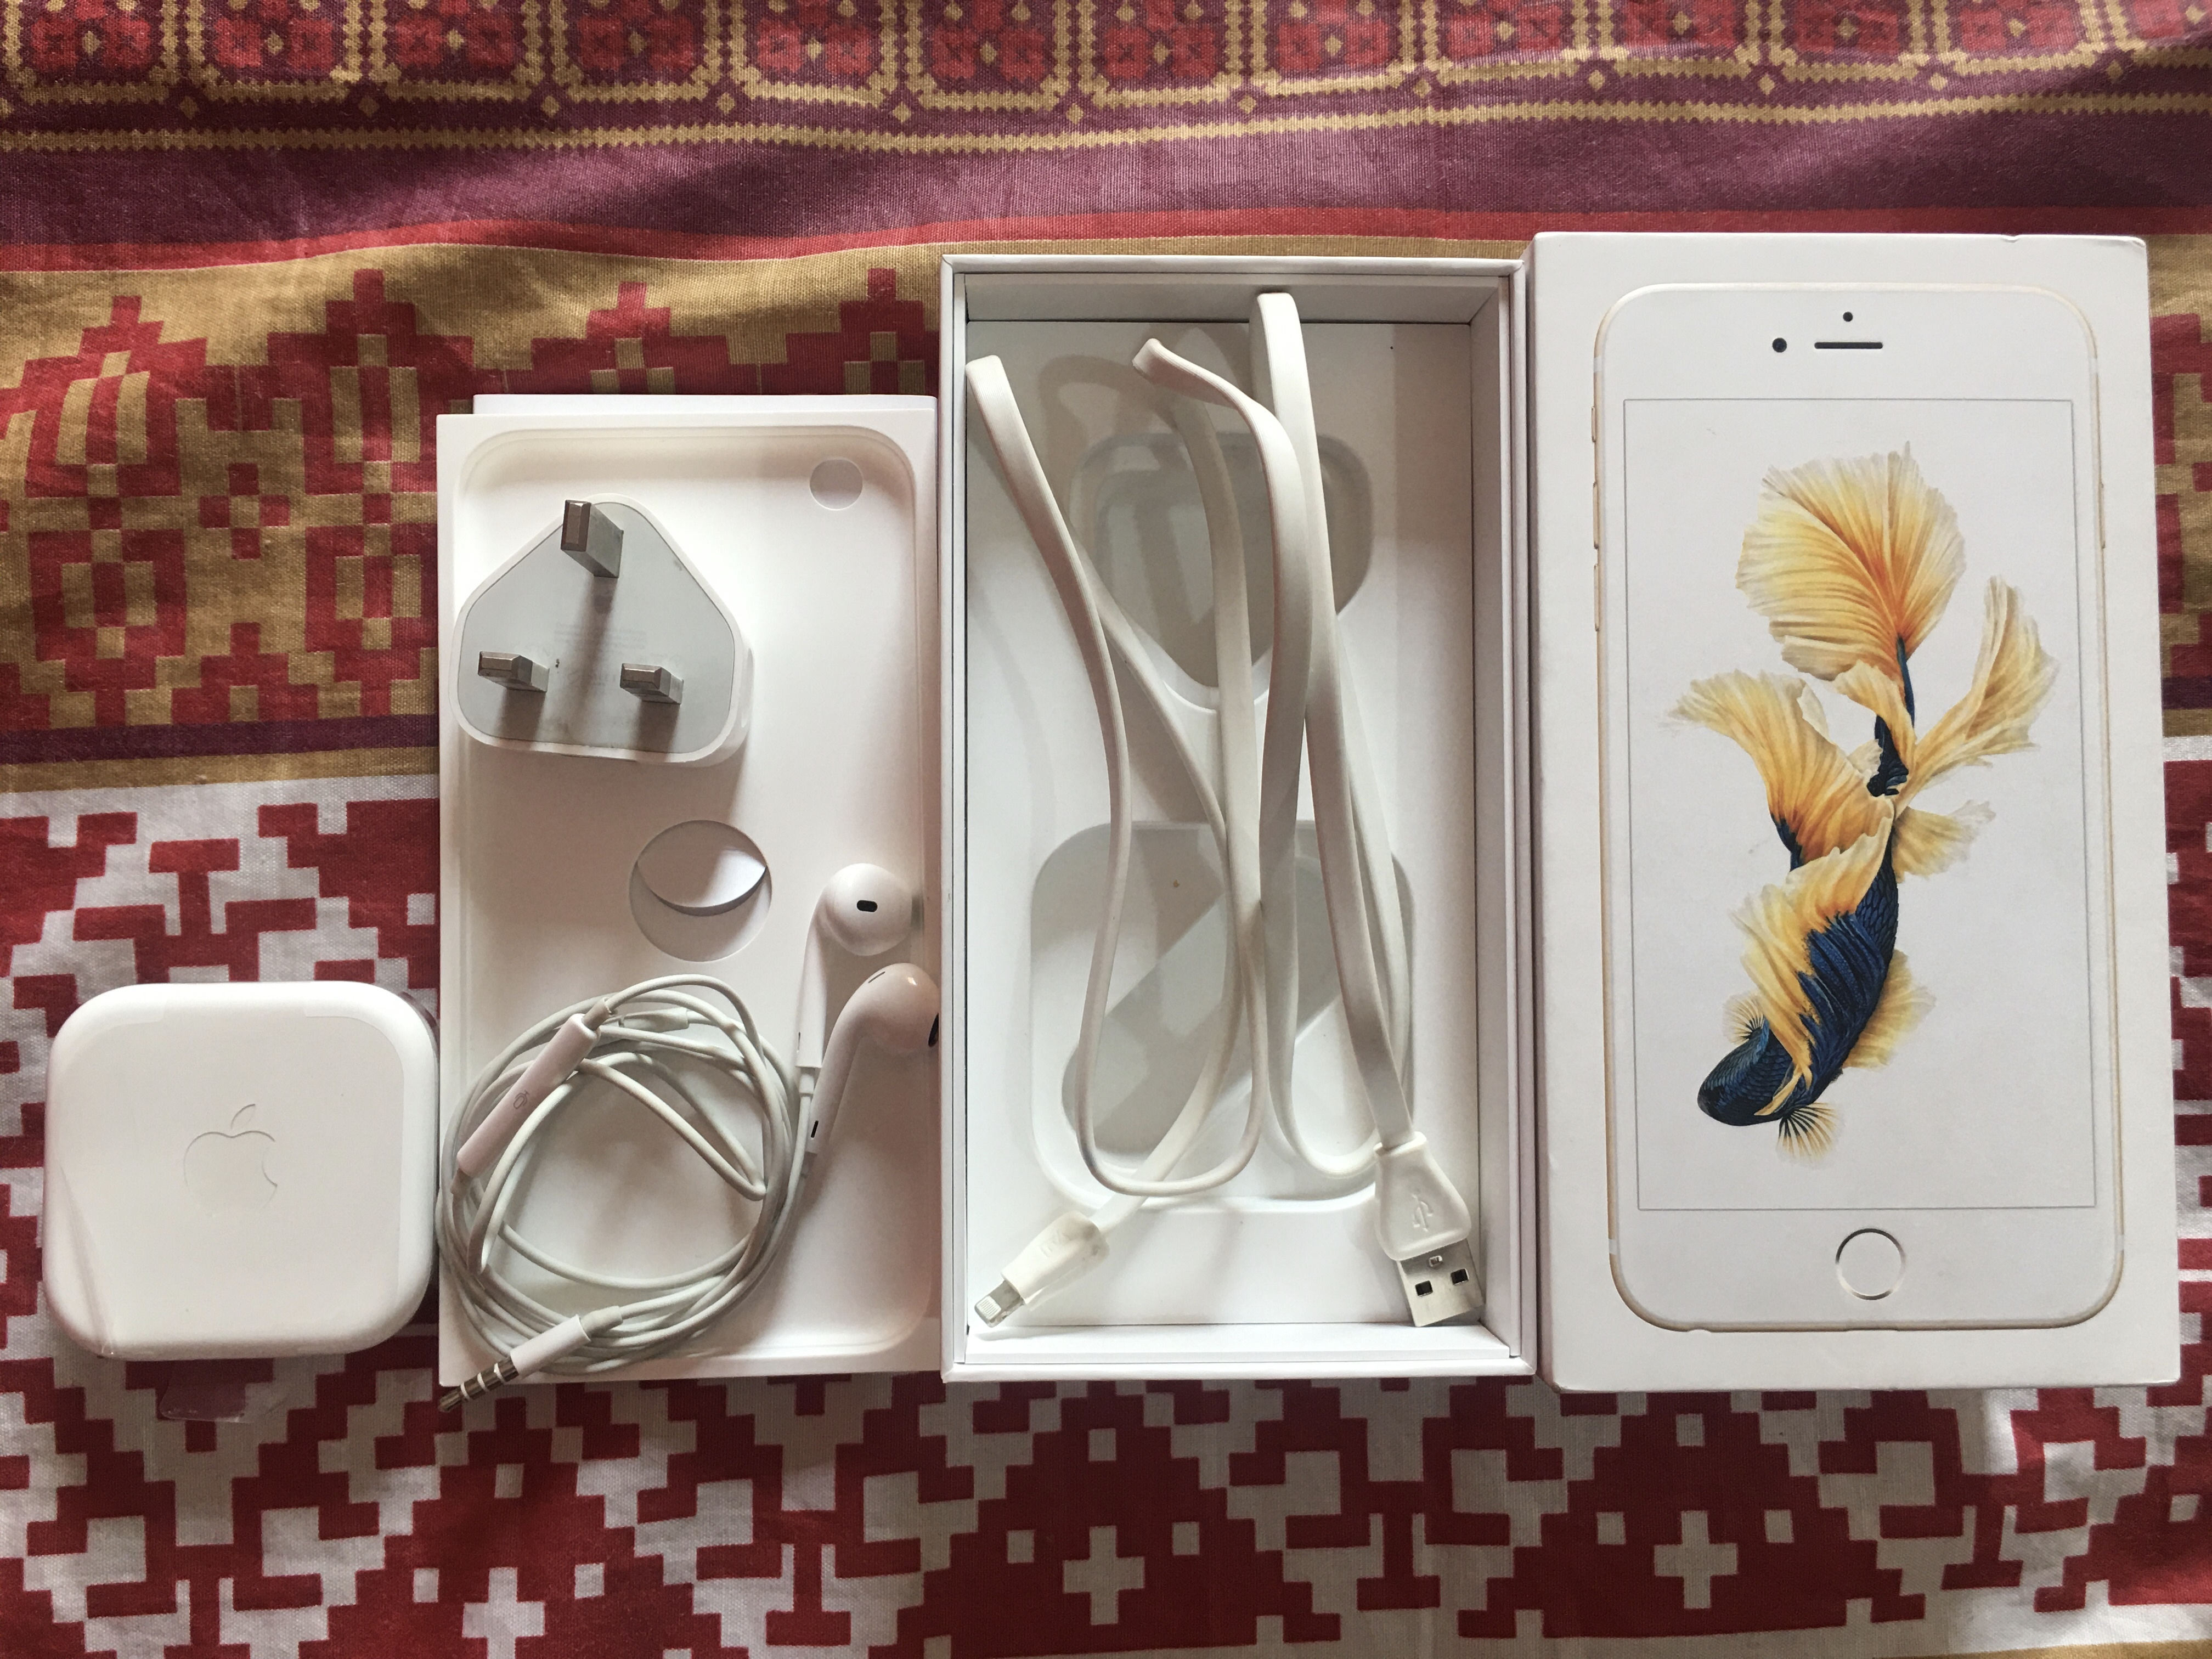 Iphone 6s plus 32gb gold 10/10 PTA approve with box and all accesories - photo 4